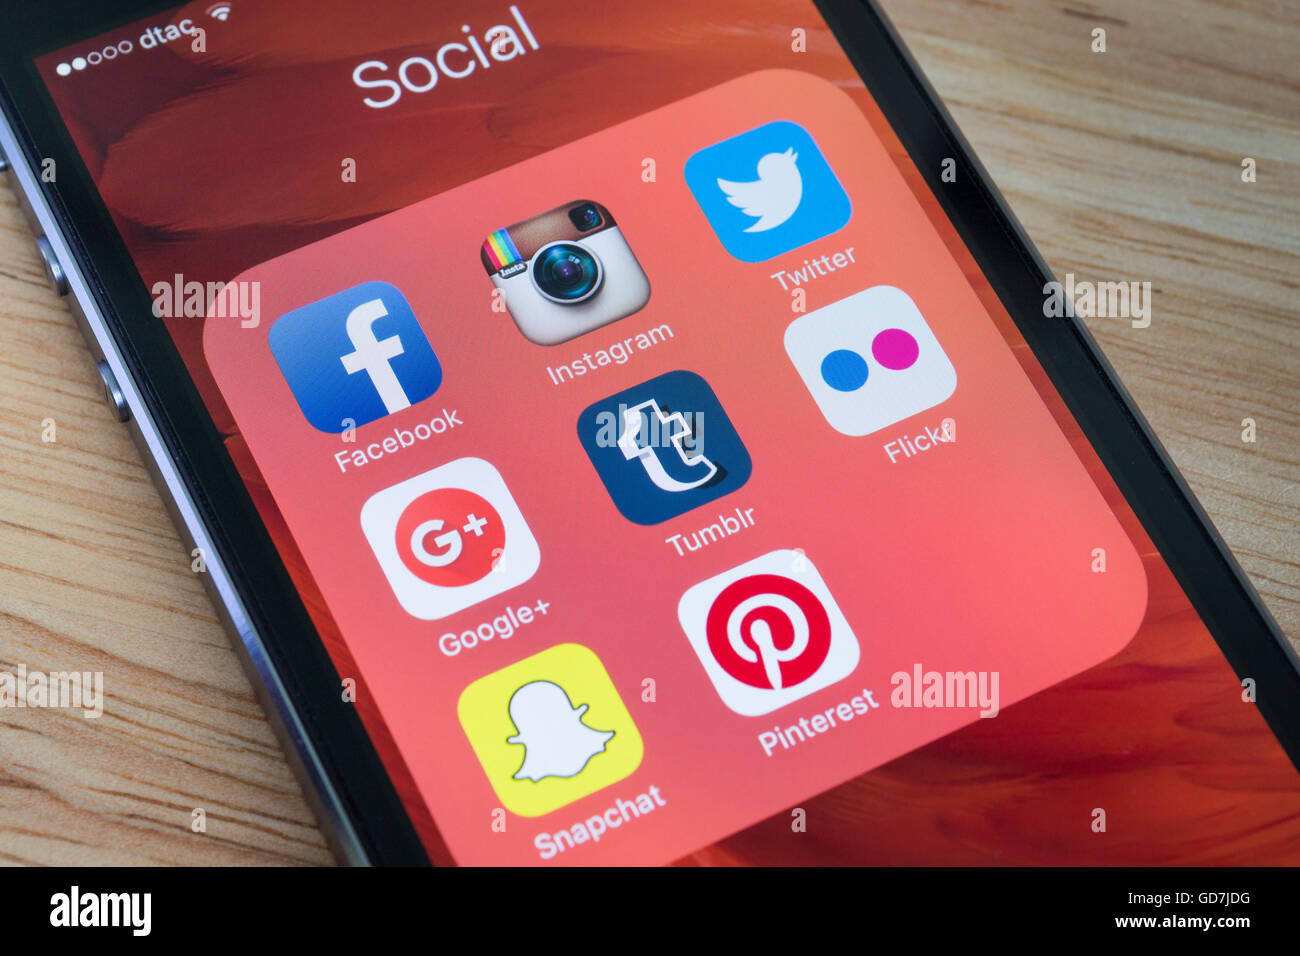 Bangkok, Thailand - December 12, 2015 : Apple iPhone5s showing its screen with popular social network applications. Stock Photo